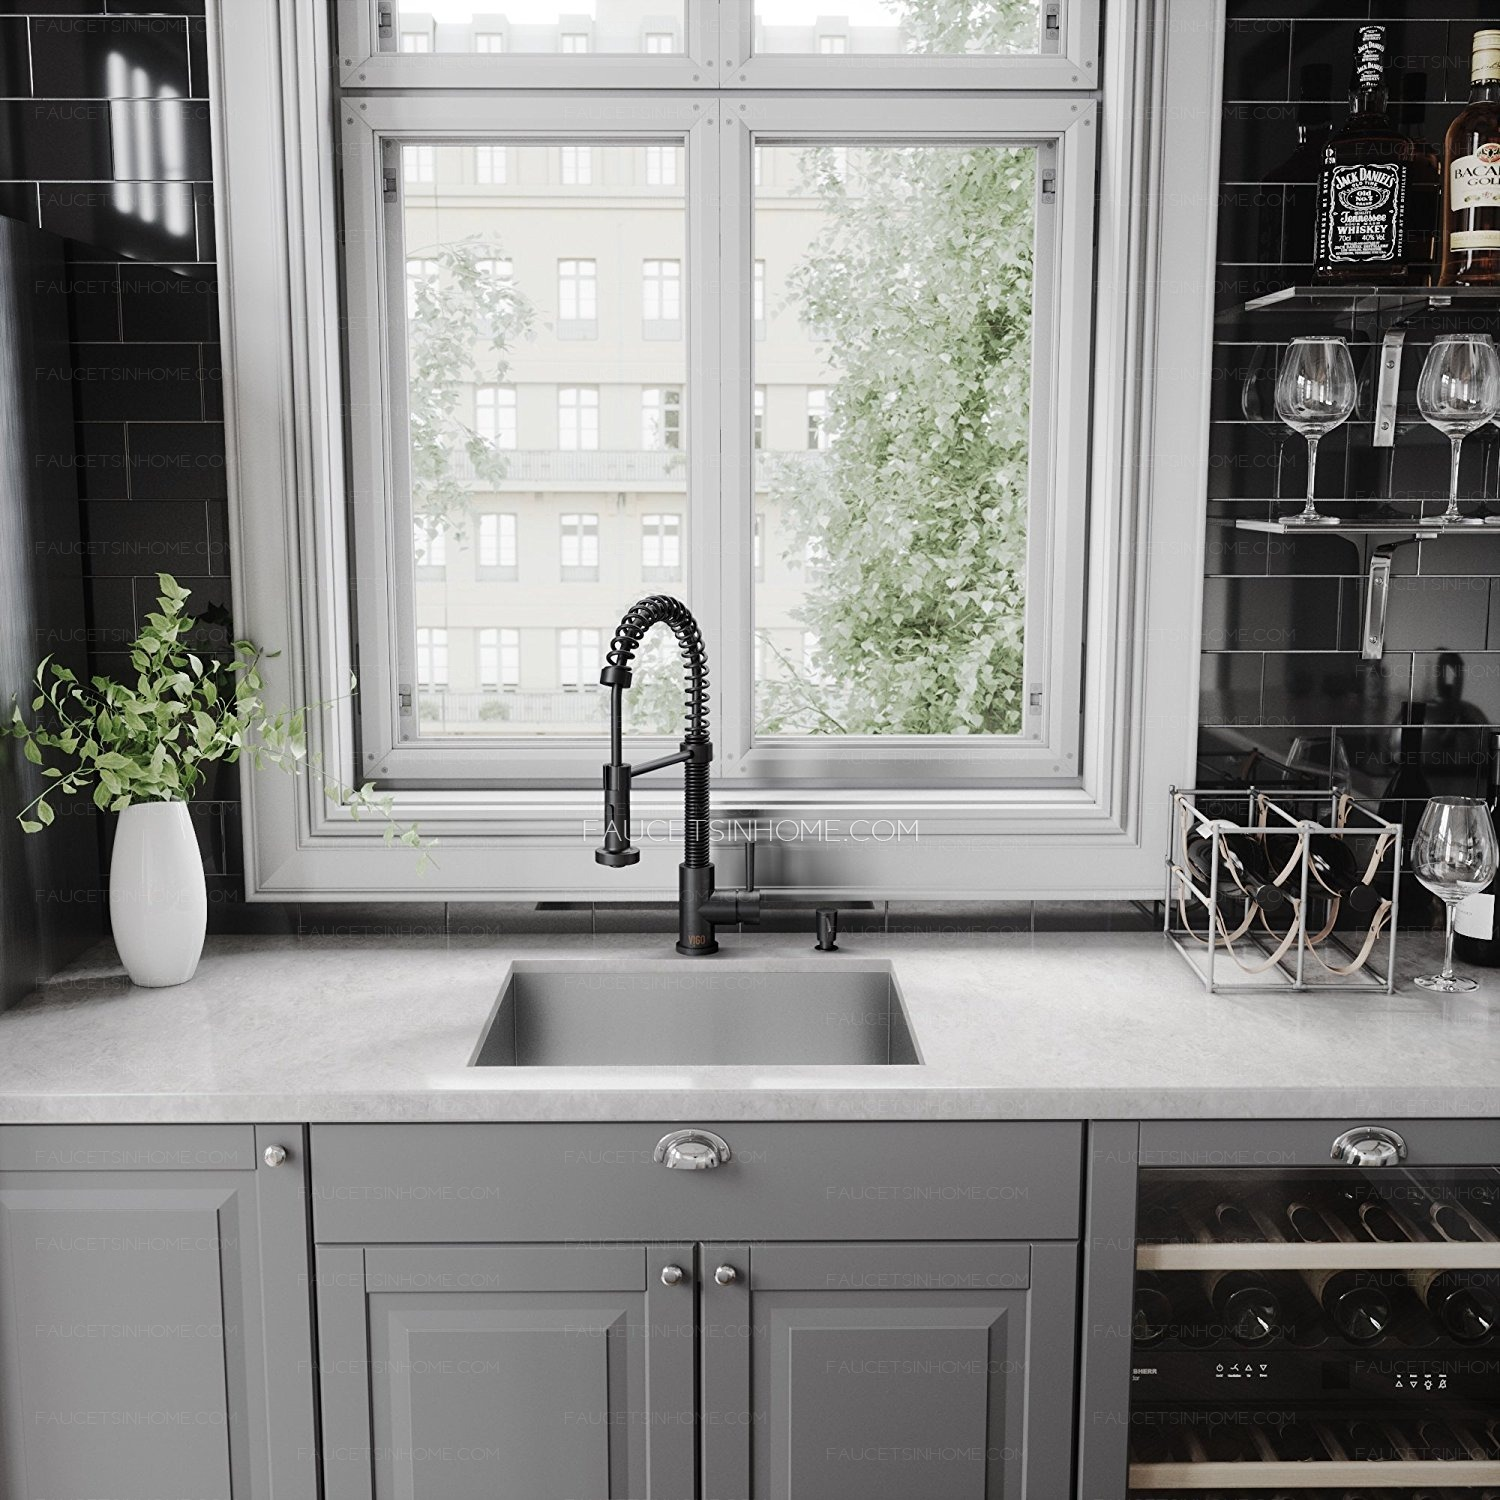 matte black oil rubbed bronze spring kitchen sink faucet with sprayer fth1803281602333